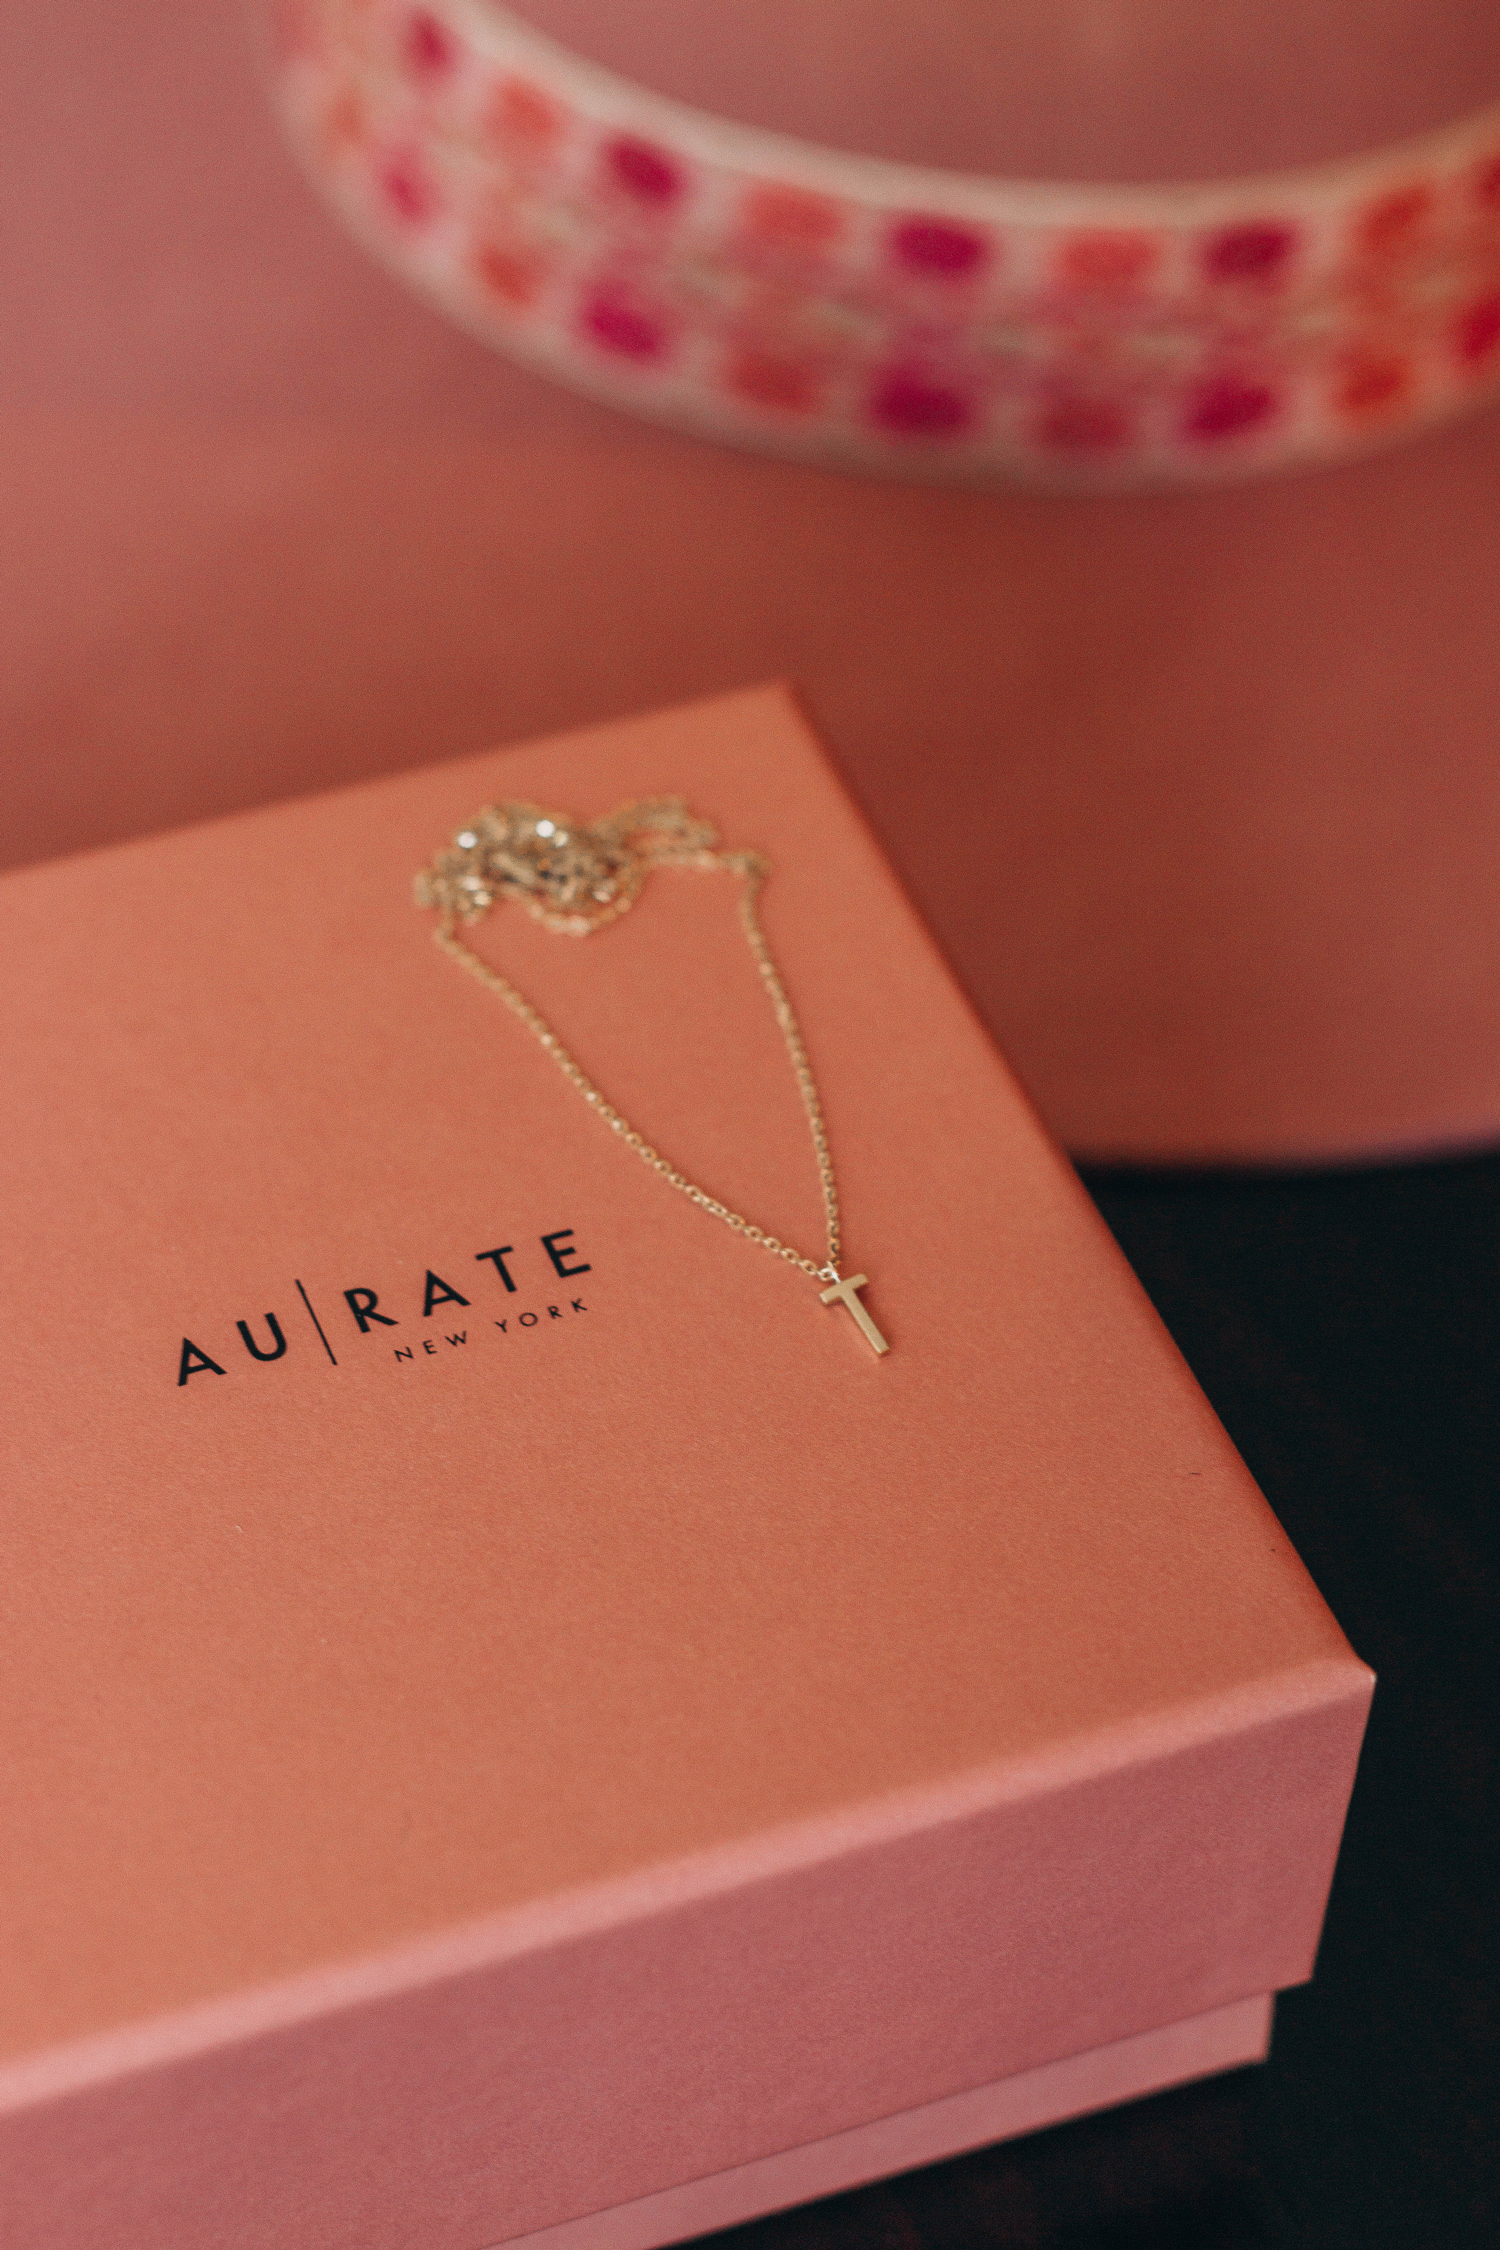 initial gold necklace engraved diamond etsy au-rate